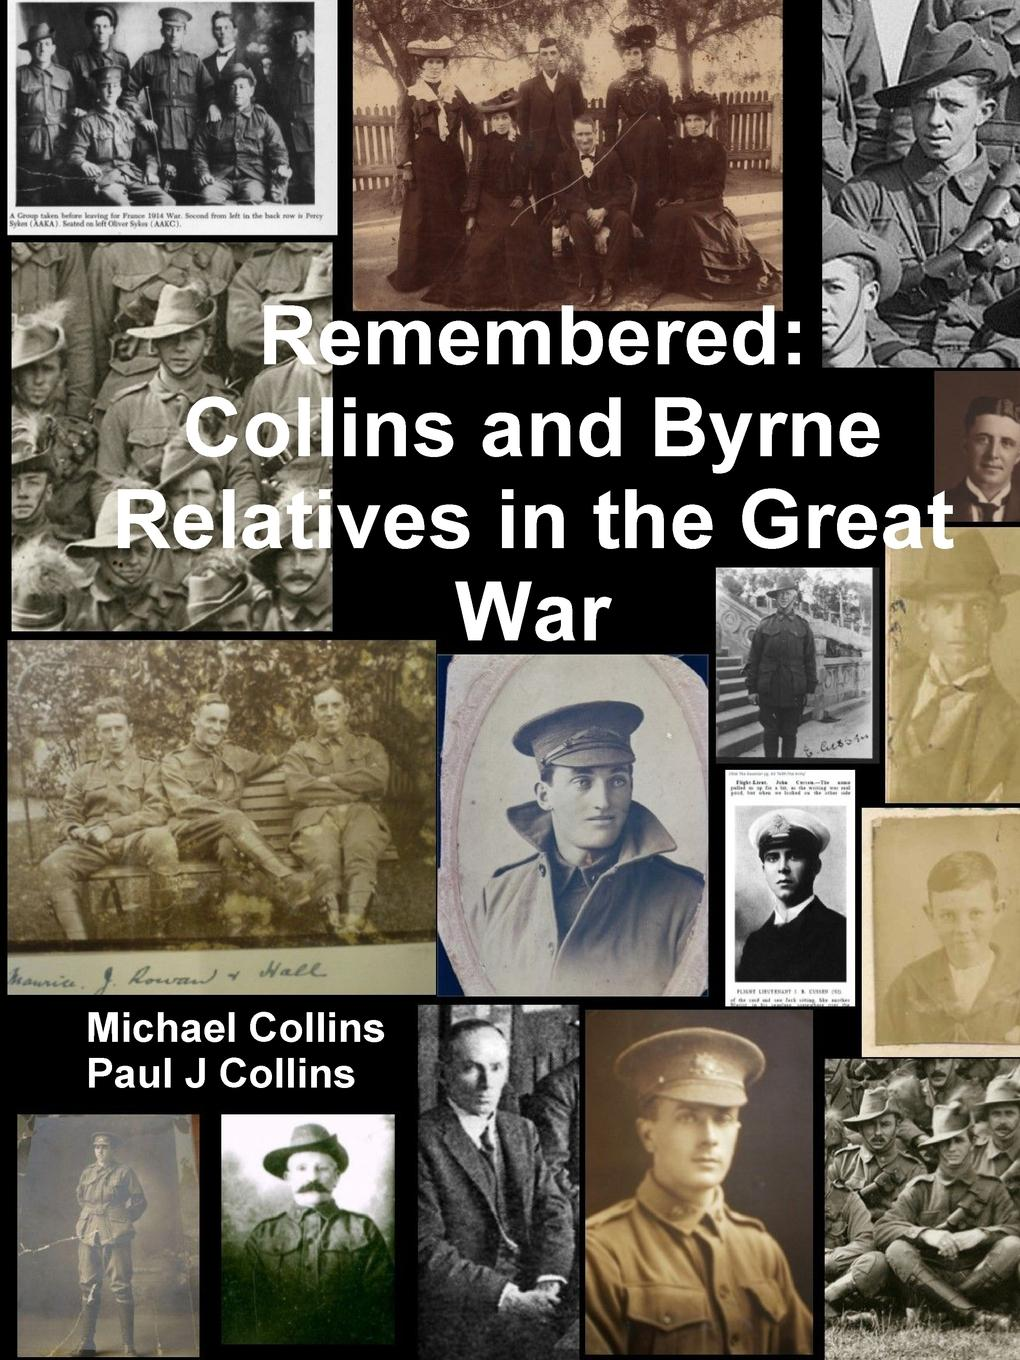 Paul J Collins, Michael Collins Remembered. Collins and Byrne Relatives in the Great War